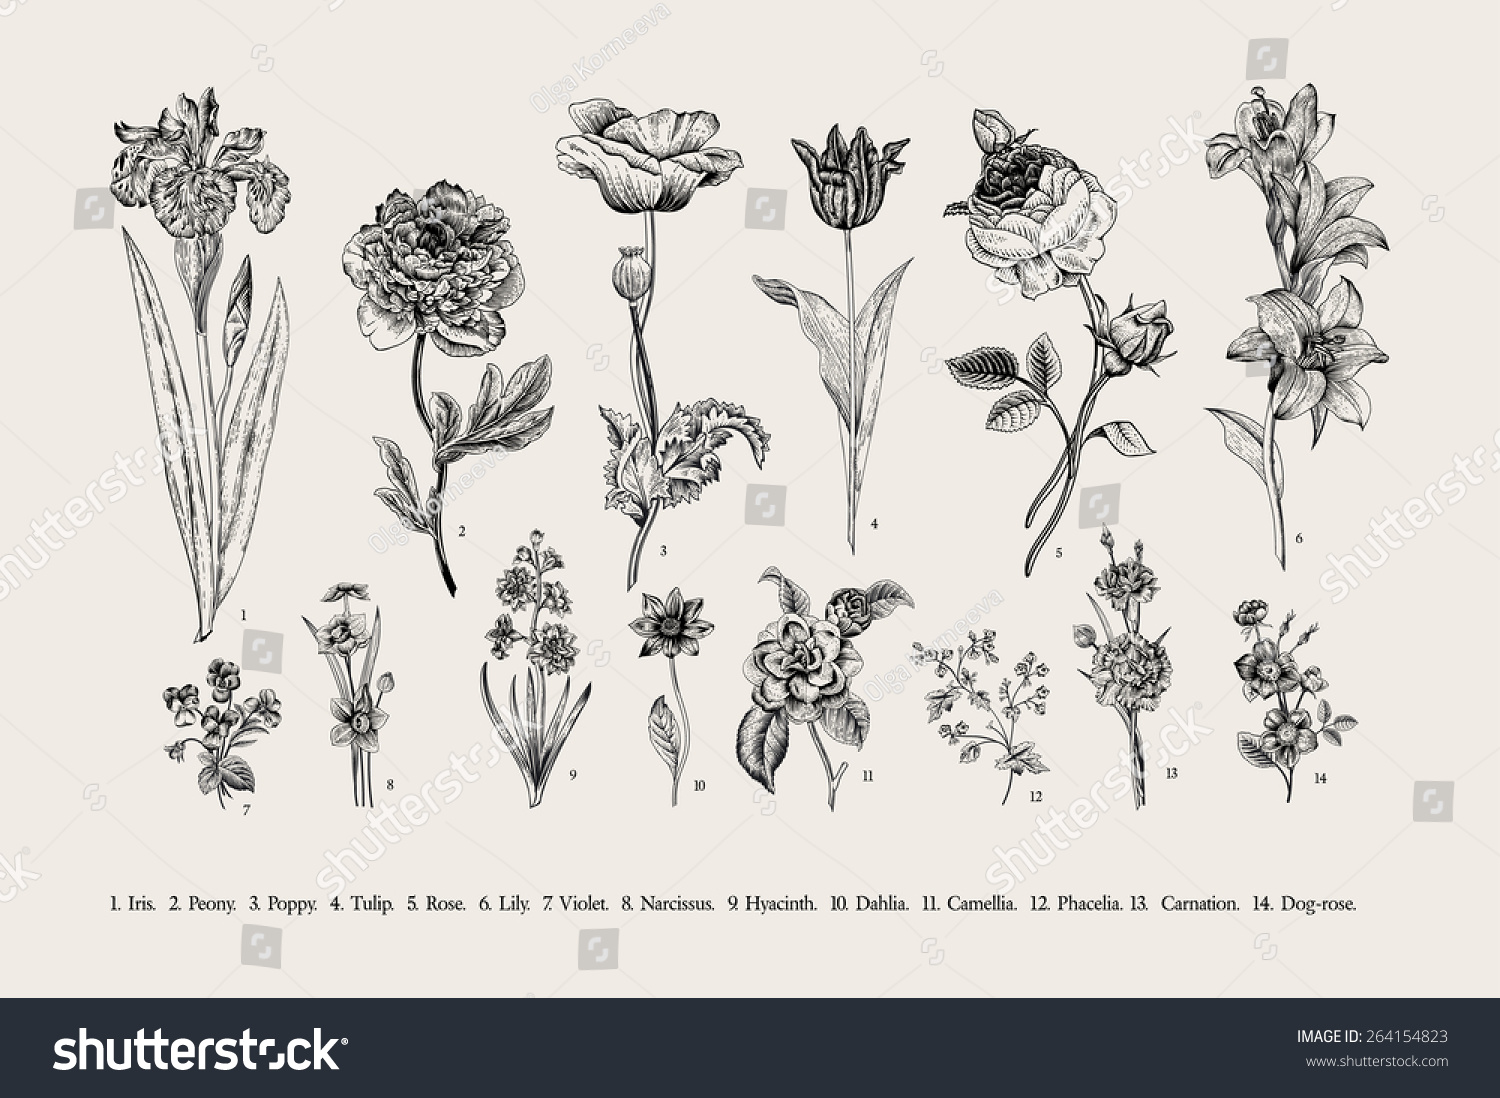 Vintage Flowers Part - 45: Vintage Flowers. Black And White Illustration In The Style Of Engravings